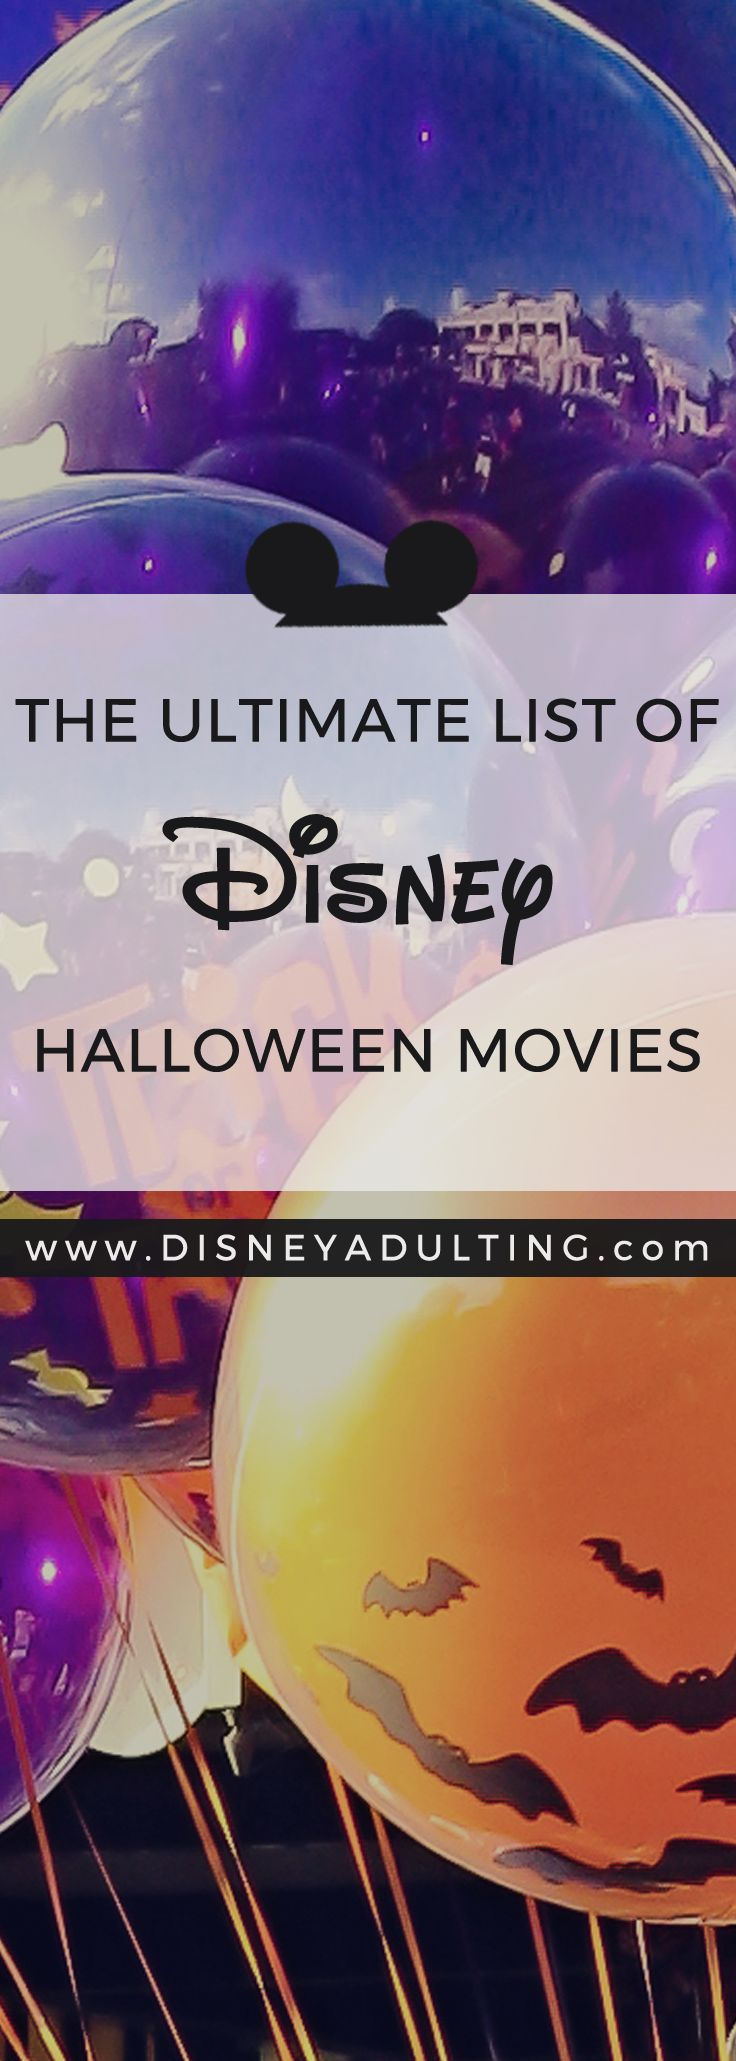 The ultimate list of Disney Halloween movies over the past several decades (29 movies in total) spanning from 1949 to 2017.